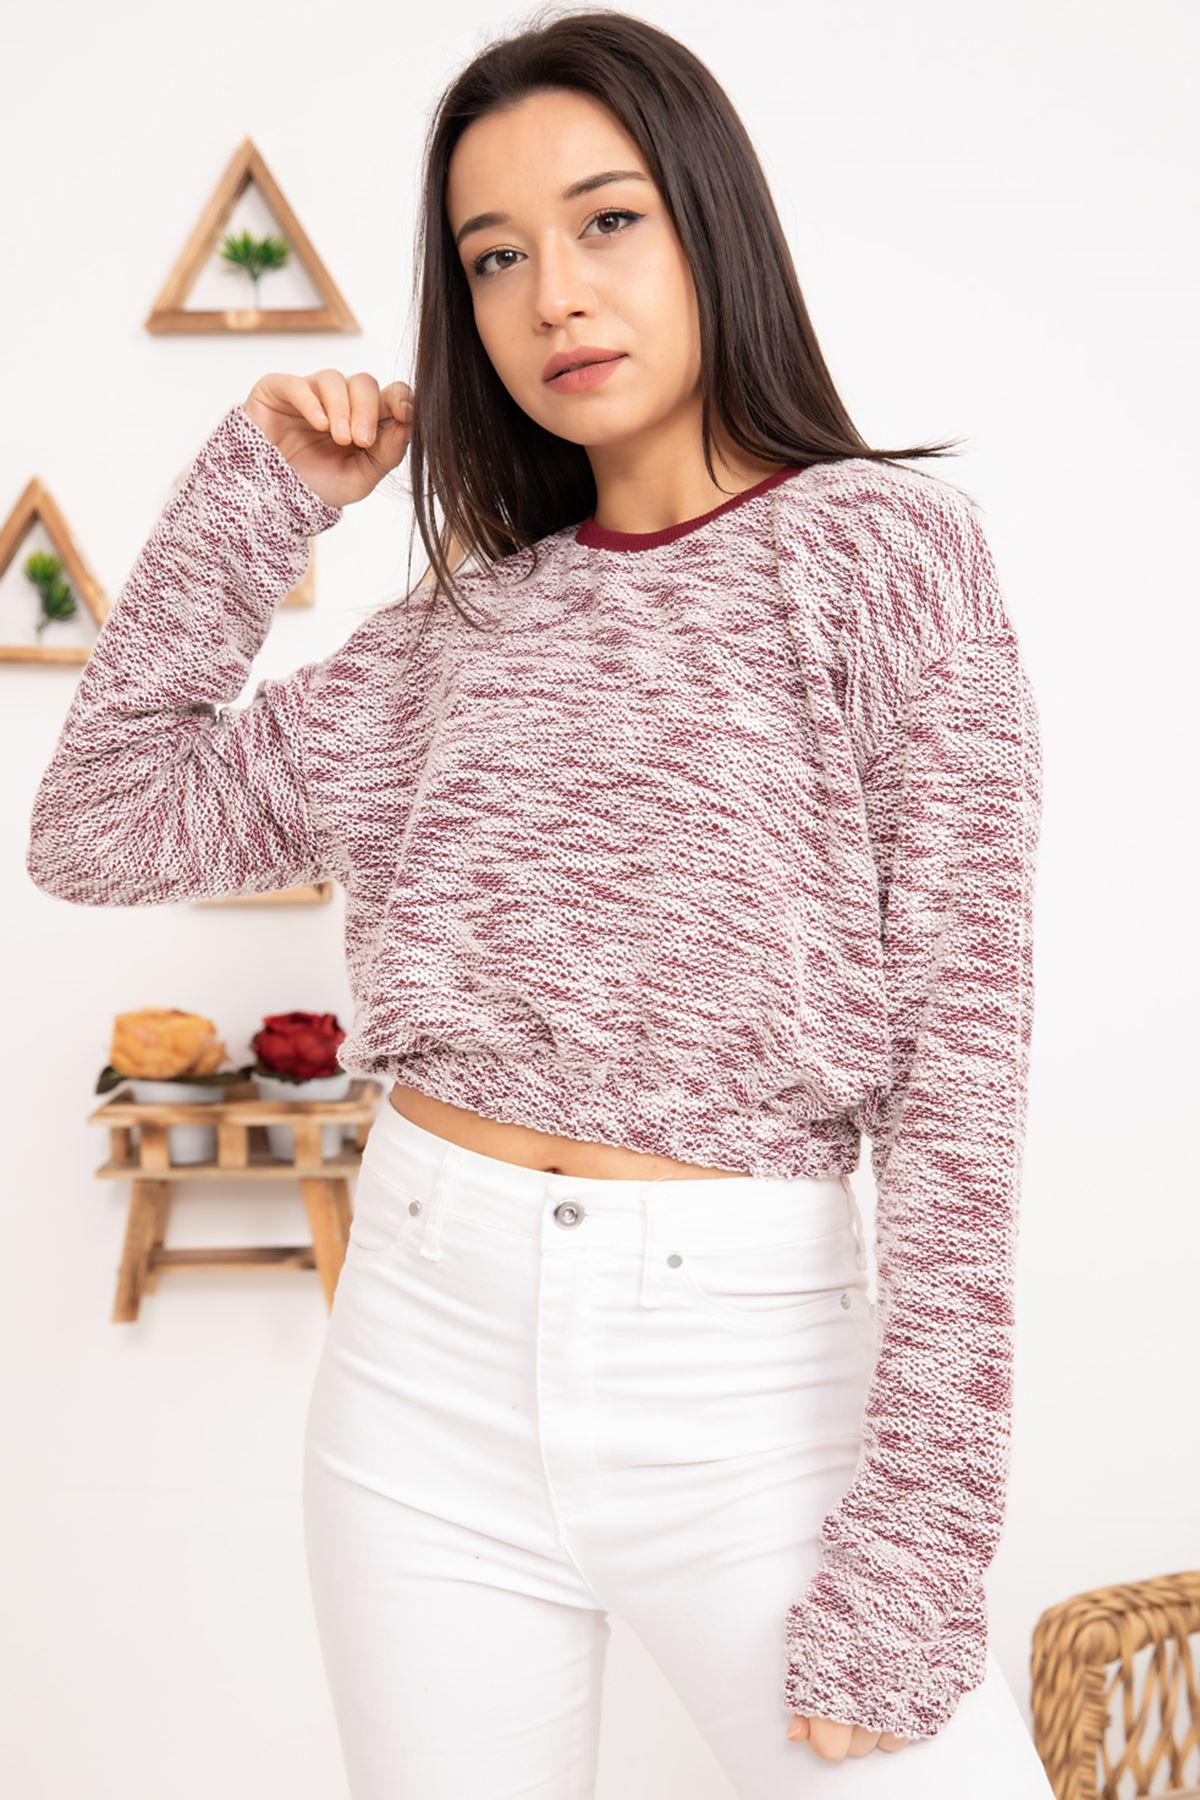 FVR-201802 BEL LASTİKLİ KISA SWEAT -BORDO